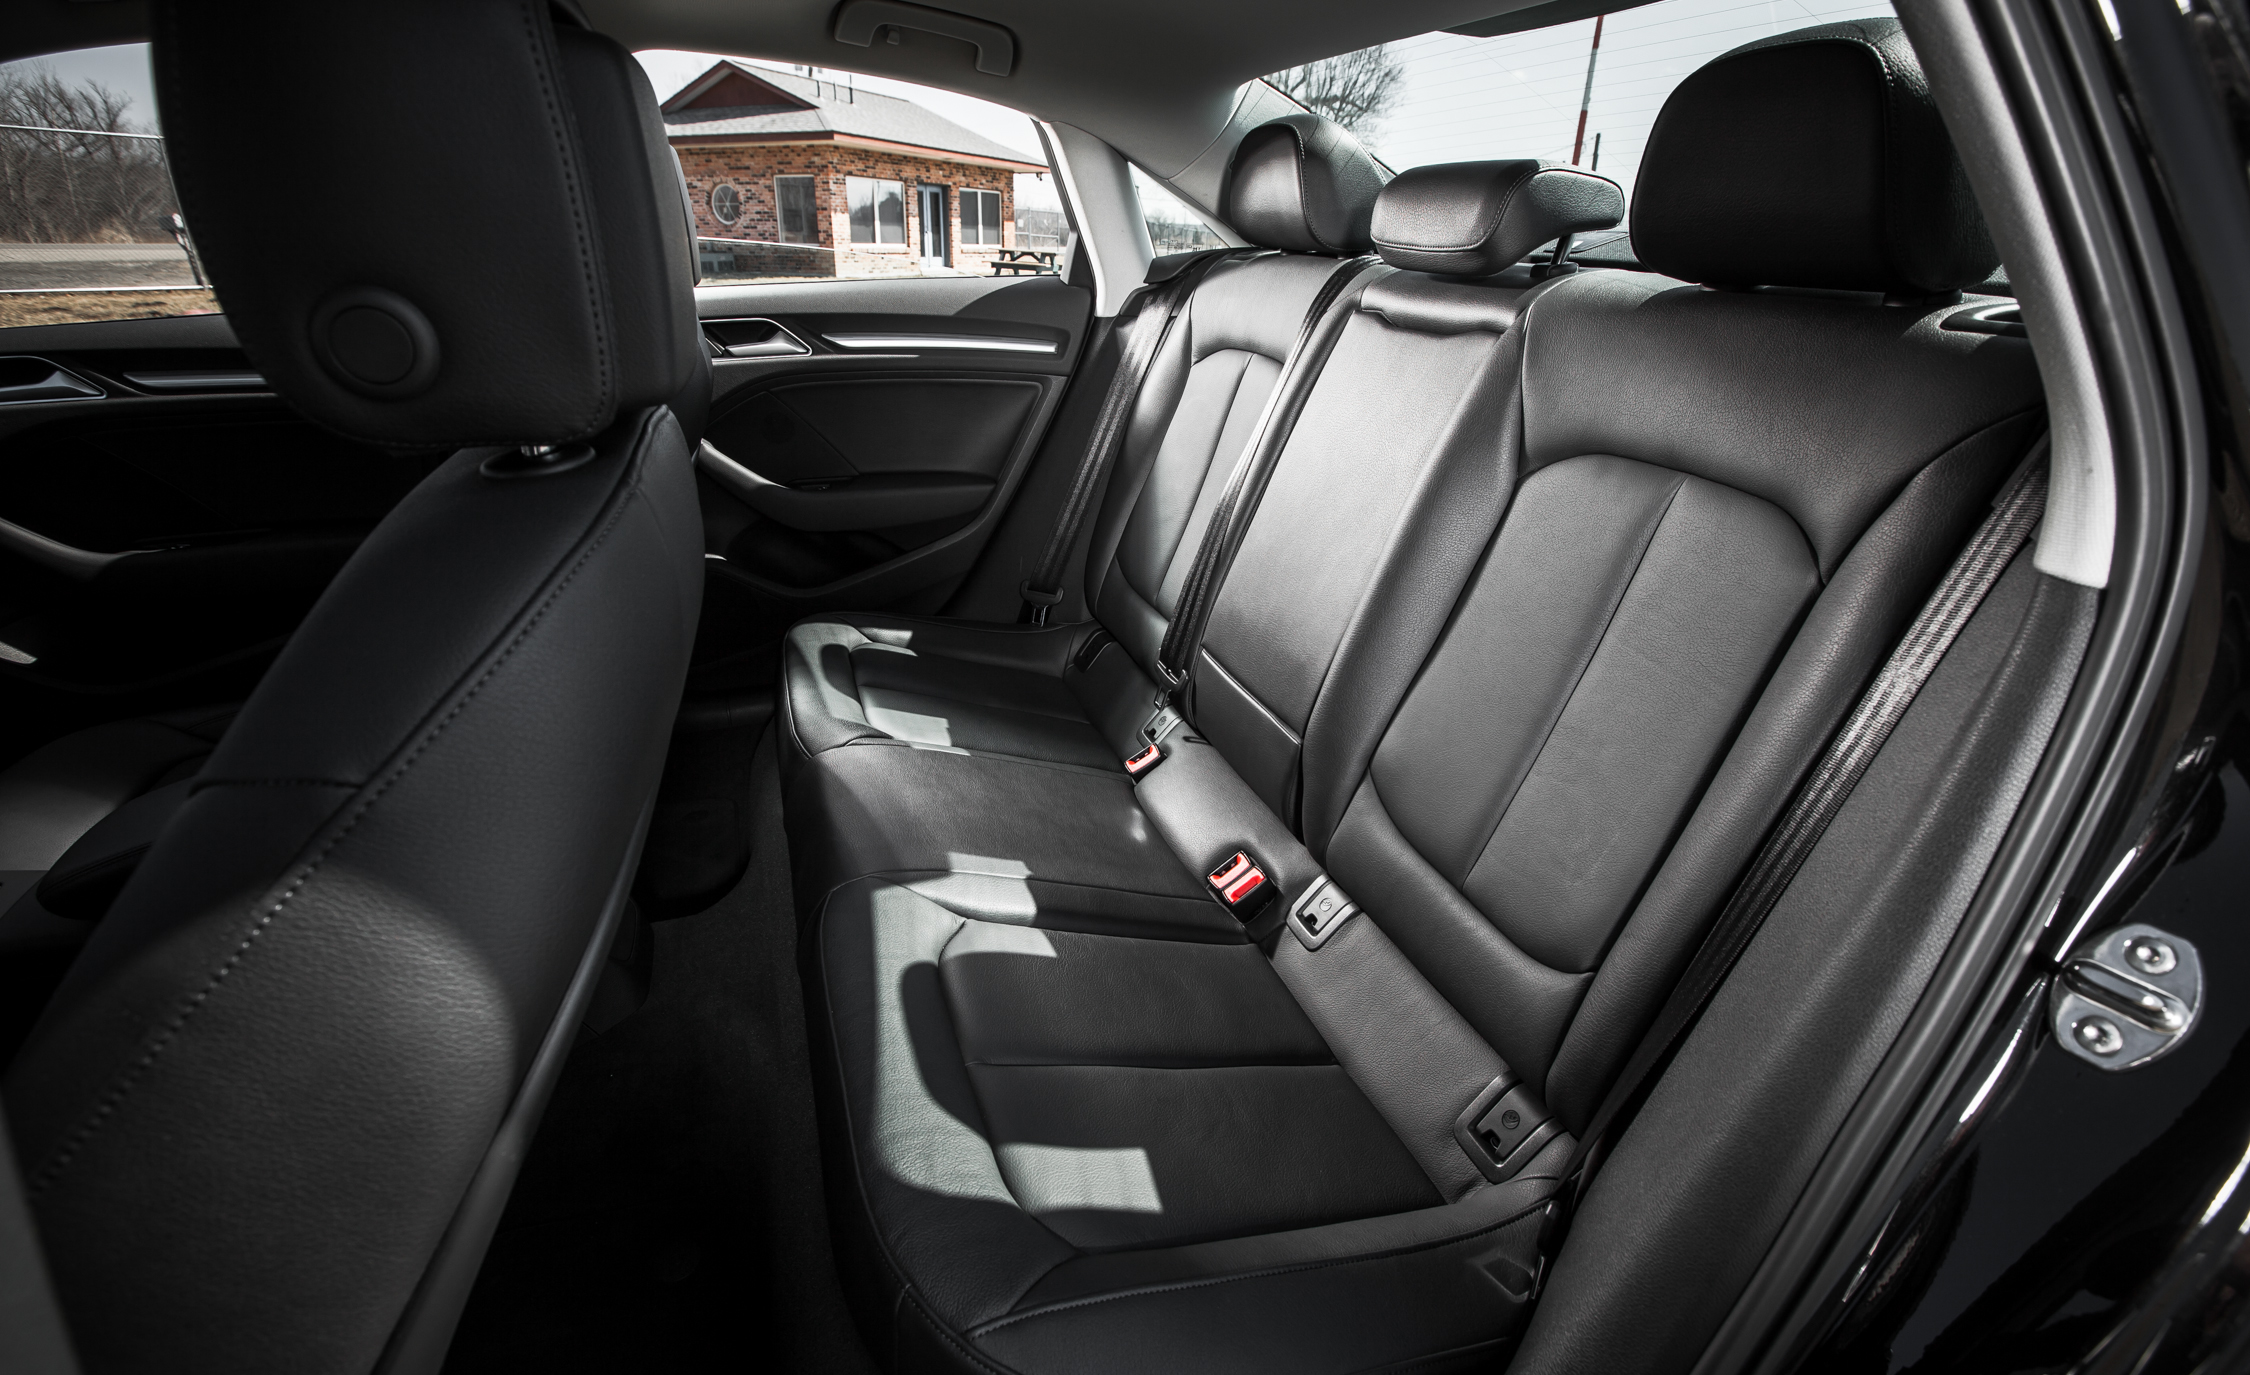 2015 Audi A3 TDI Interior Seats Rear (Photo 13 of 50)